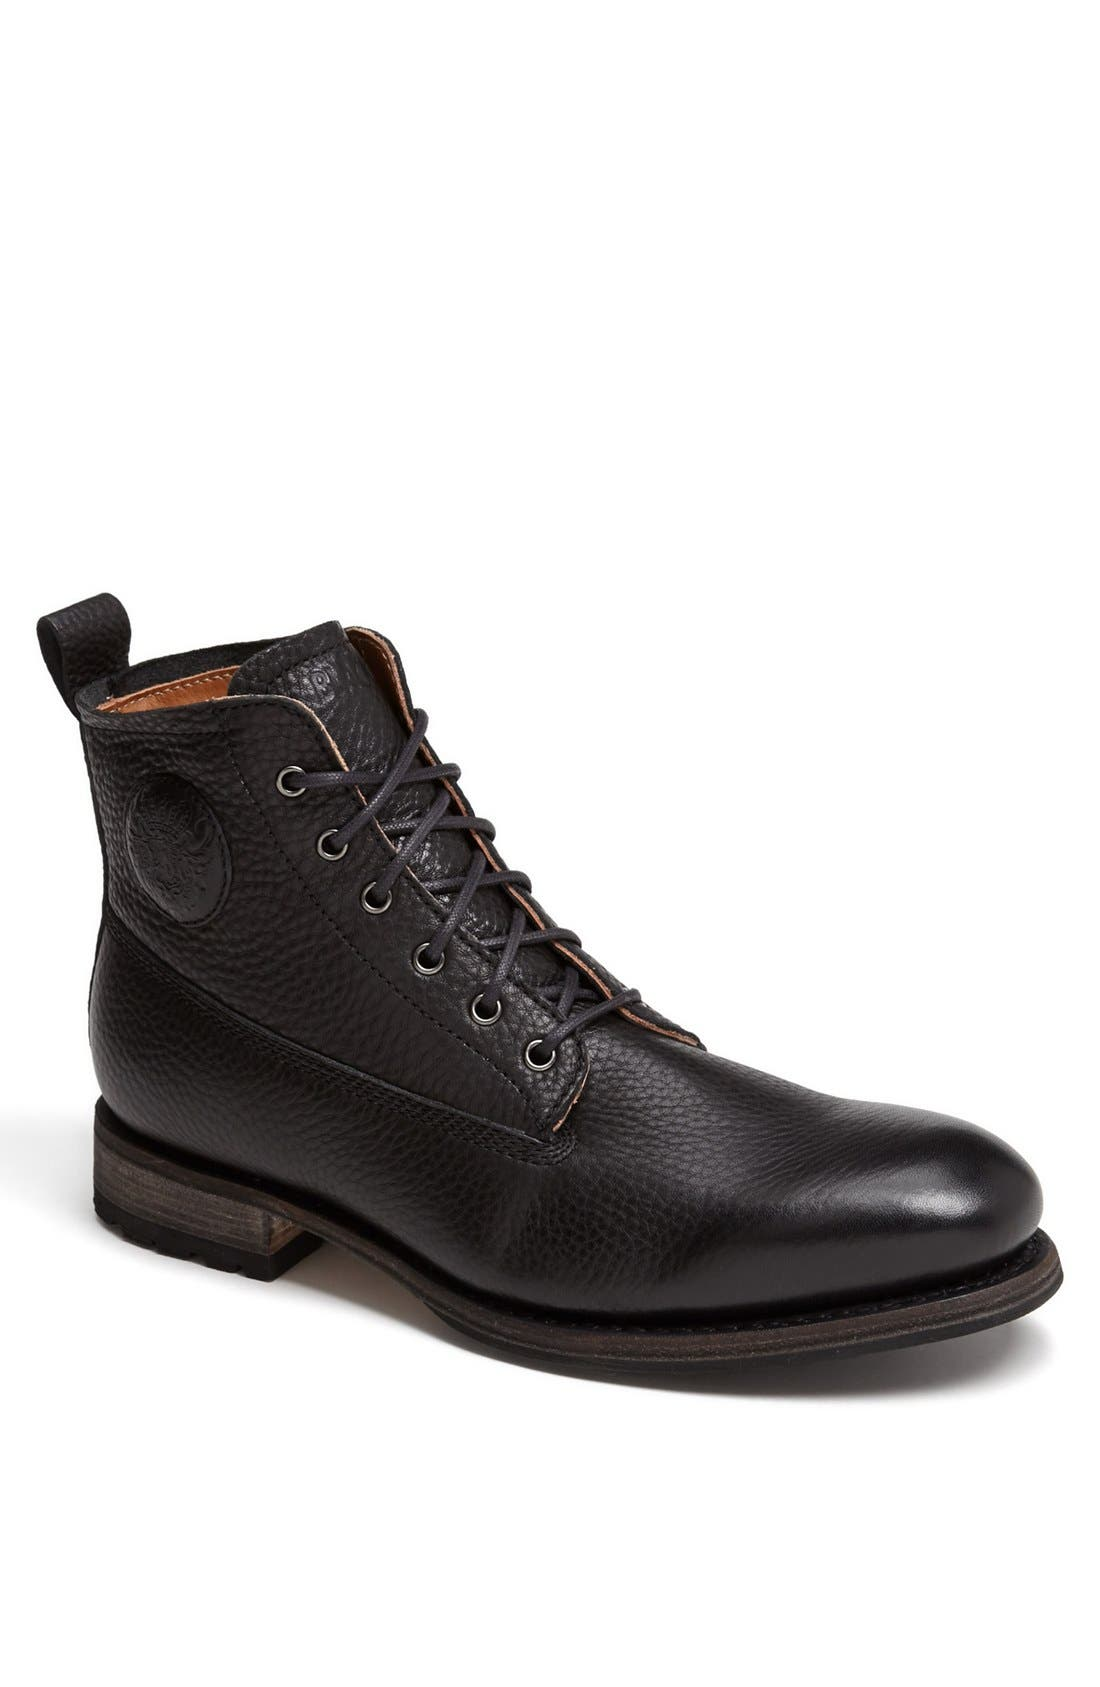 Blackstone 'GM 09' Plain Toe Boot (Men)